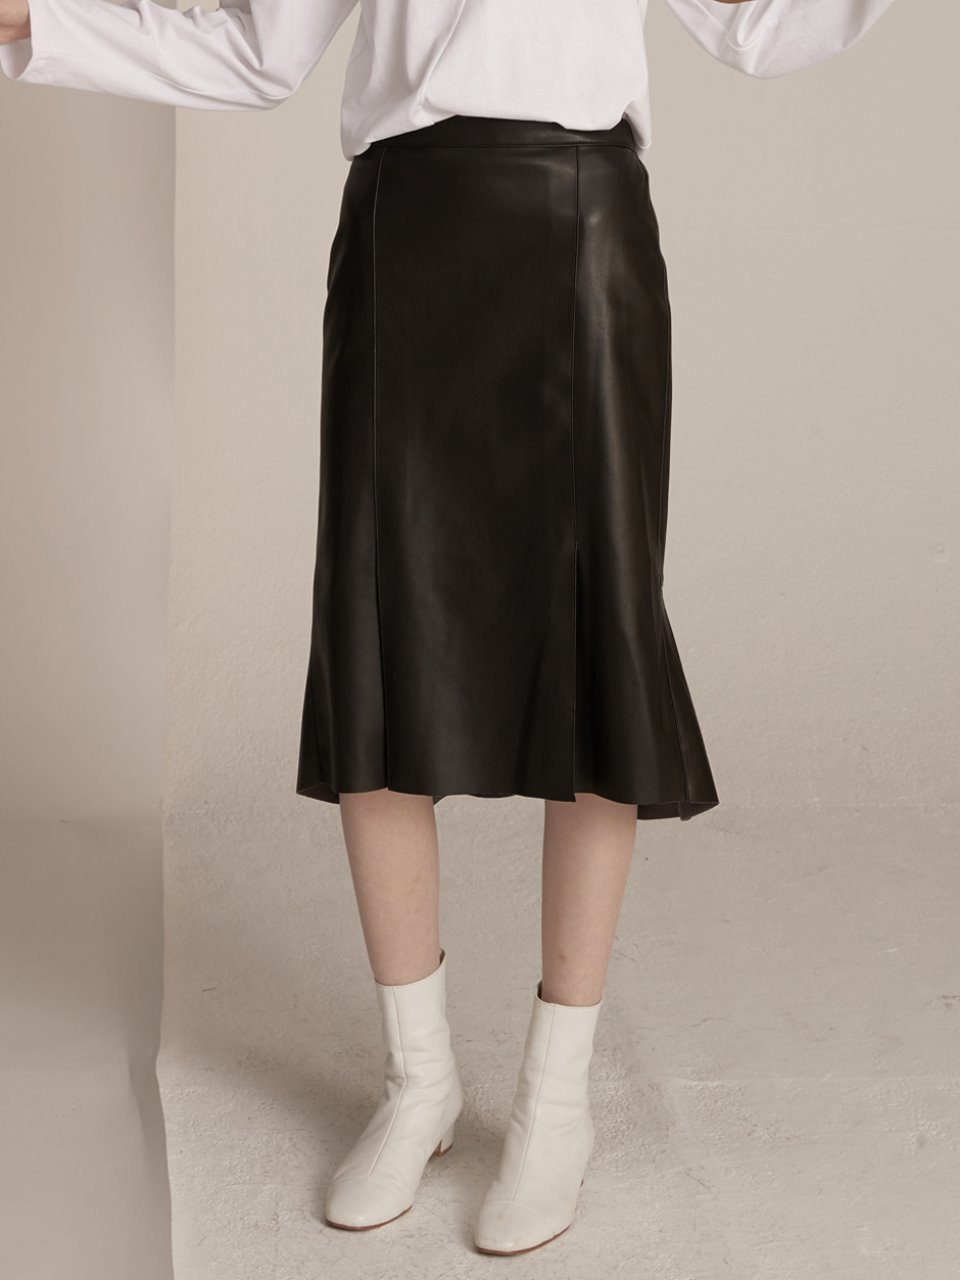 Reversal Mermaid Skirt - Leather Black